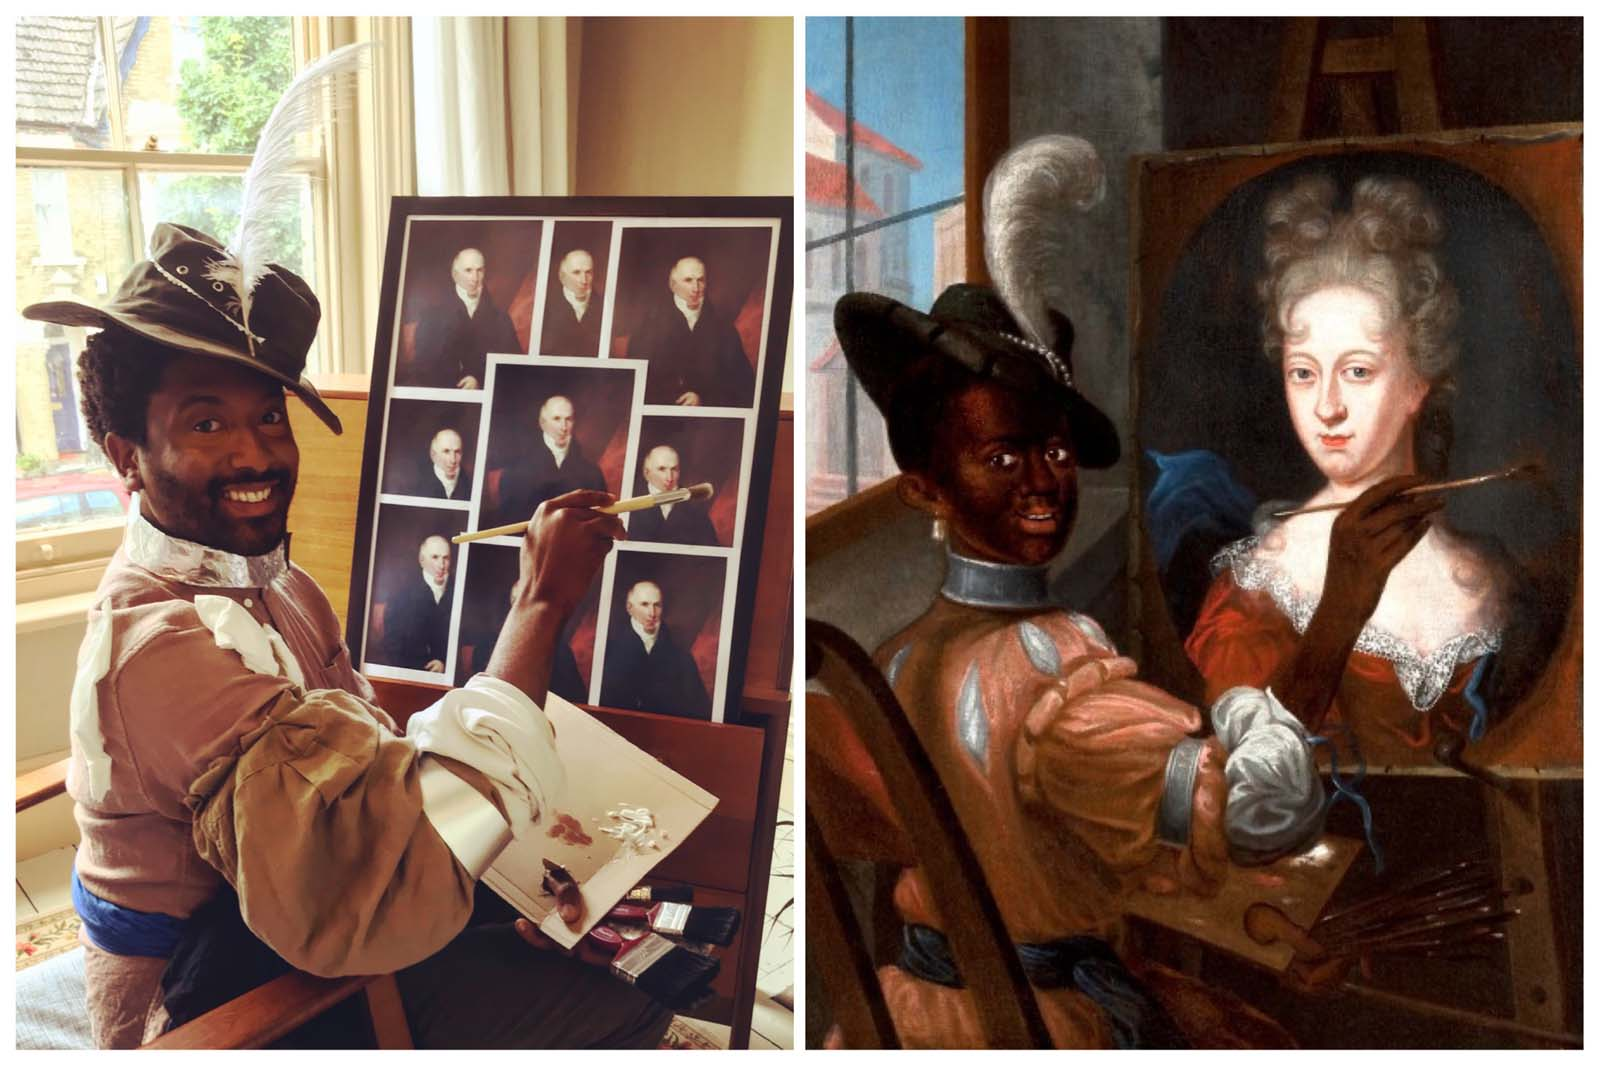 painting of black man painting at an easel next to a photo with a man imitating the same scene